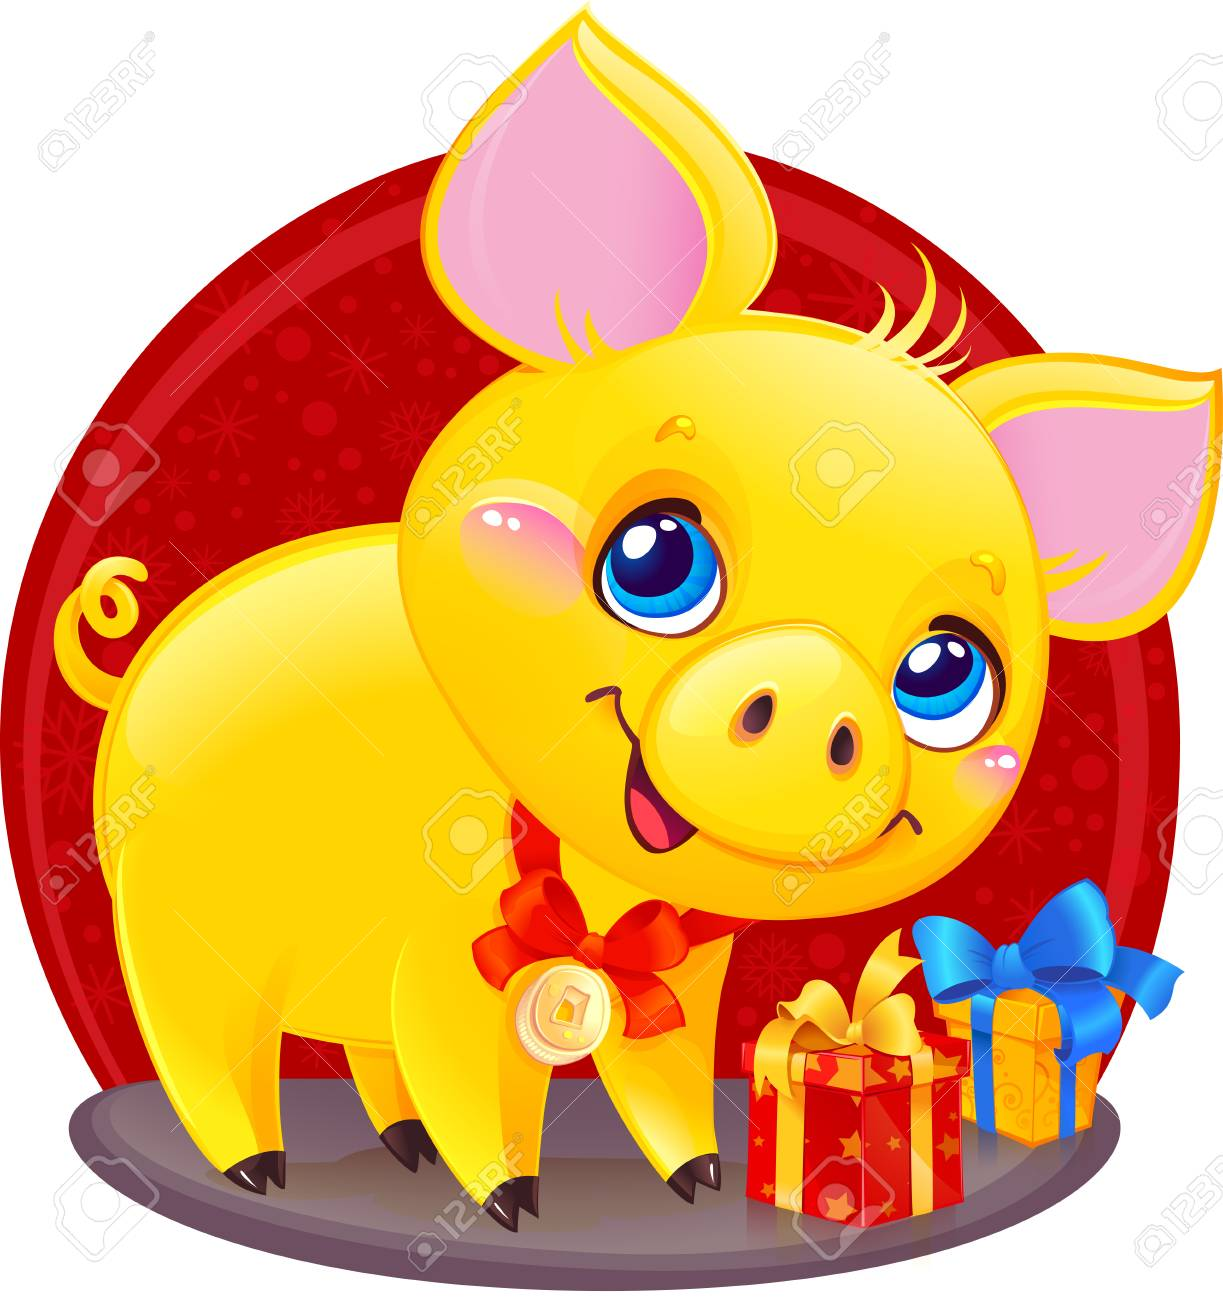 Yellow Earthy Pig for the New Year 2019. Cute Symbol of Chinese Horoscope. - 111999551